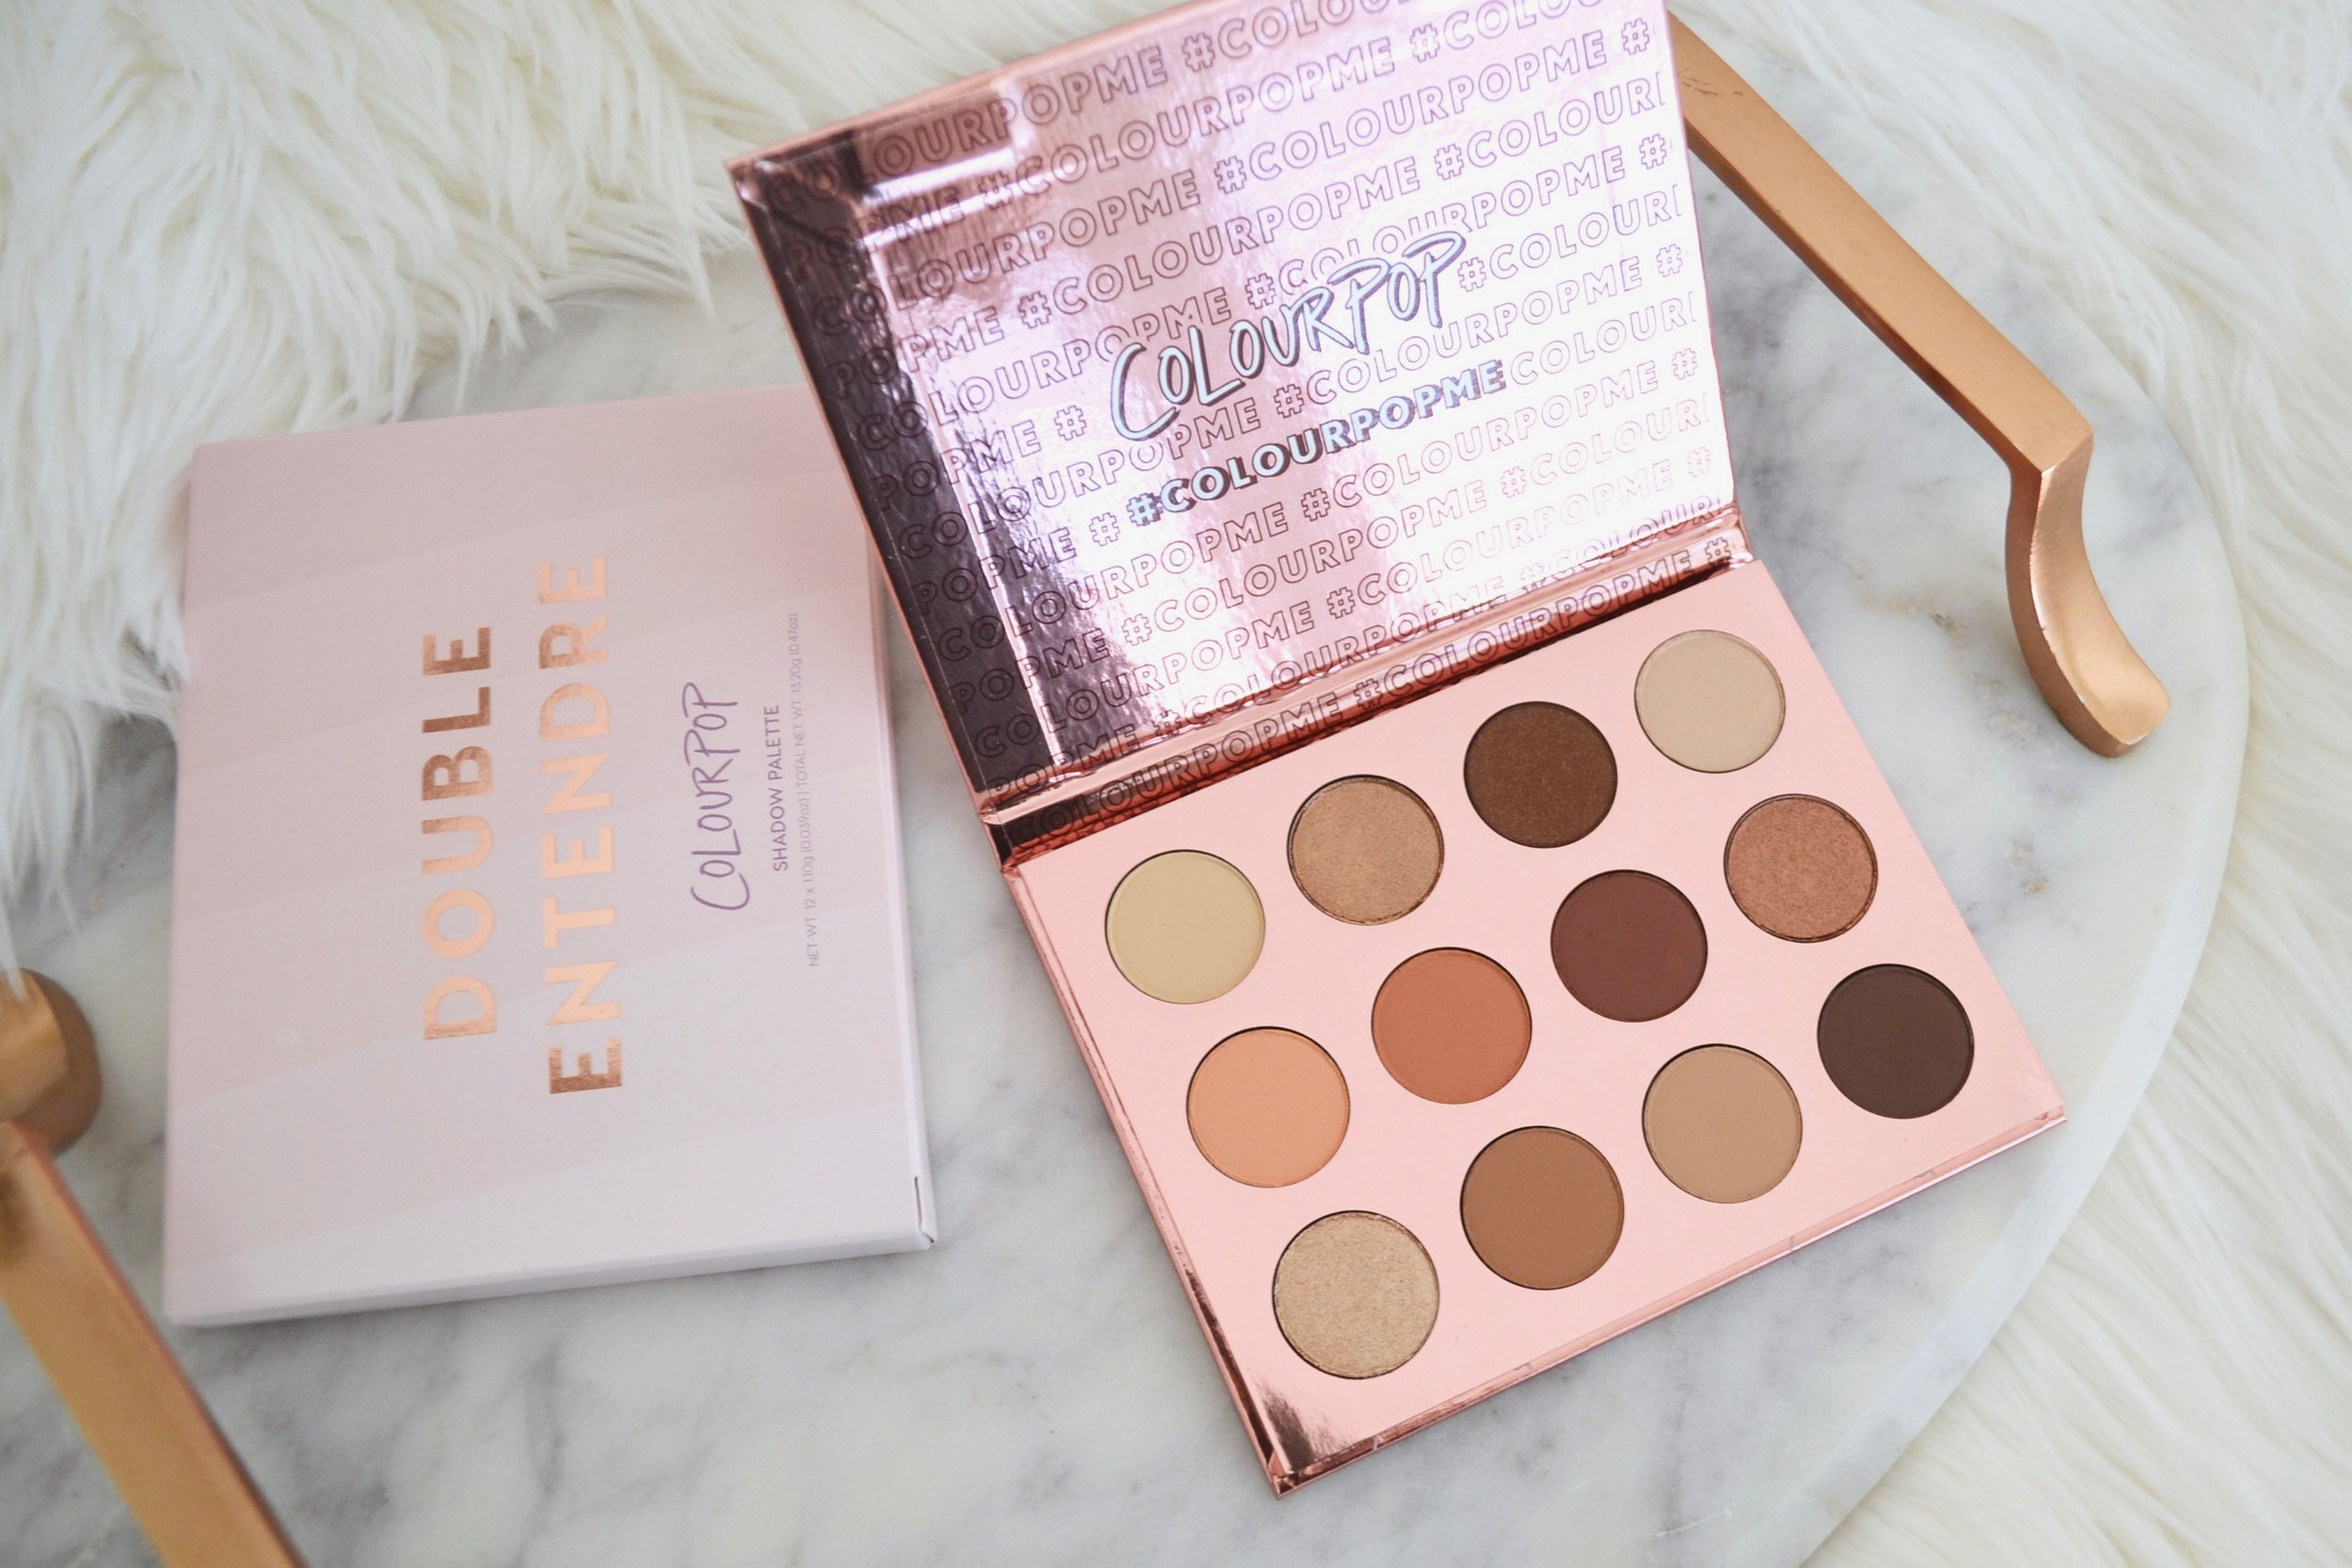 ColourPop Cosmetics Double Entendre Palette - Review and Swatches